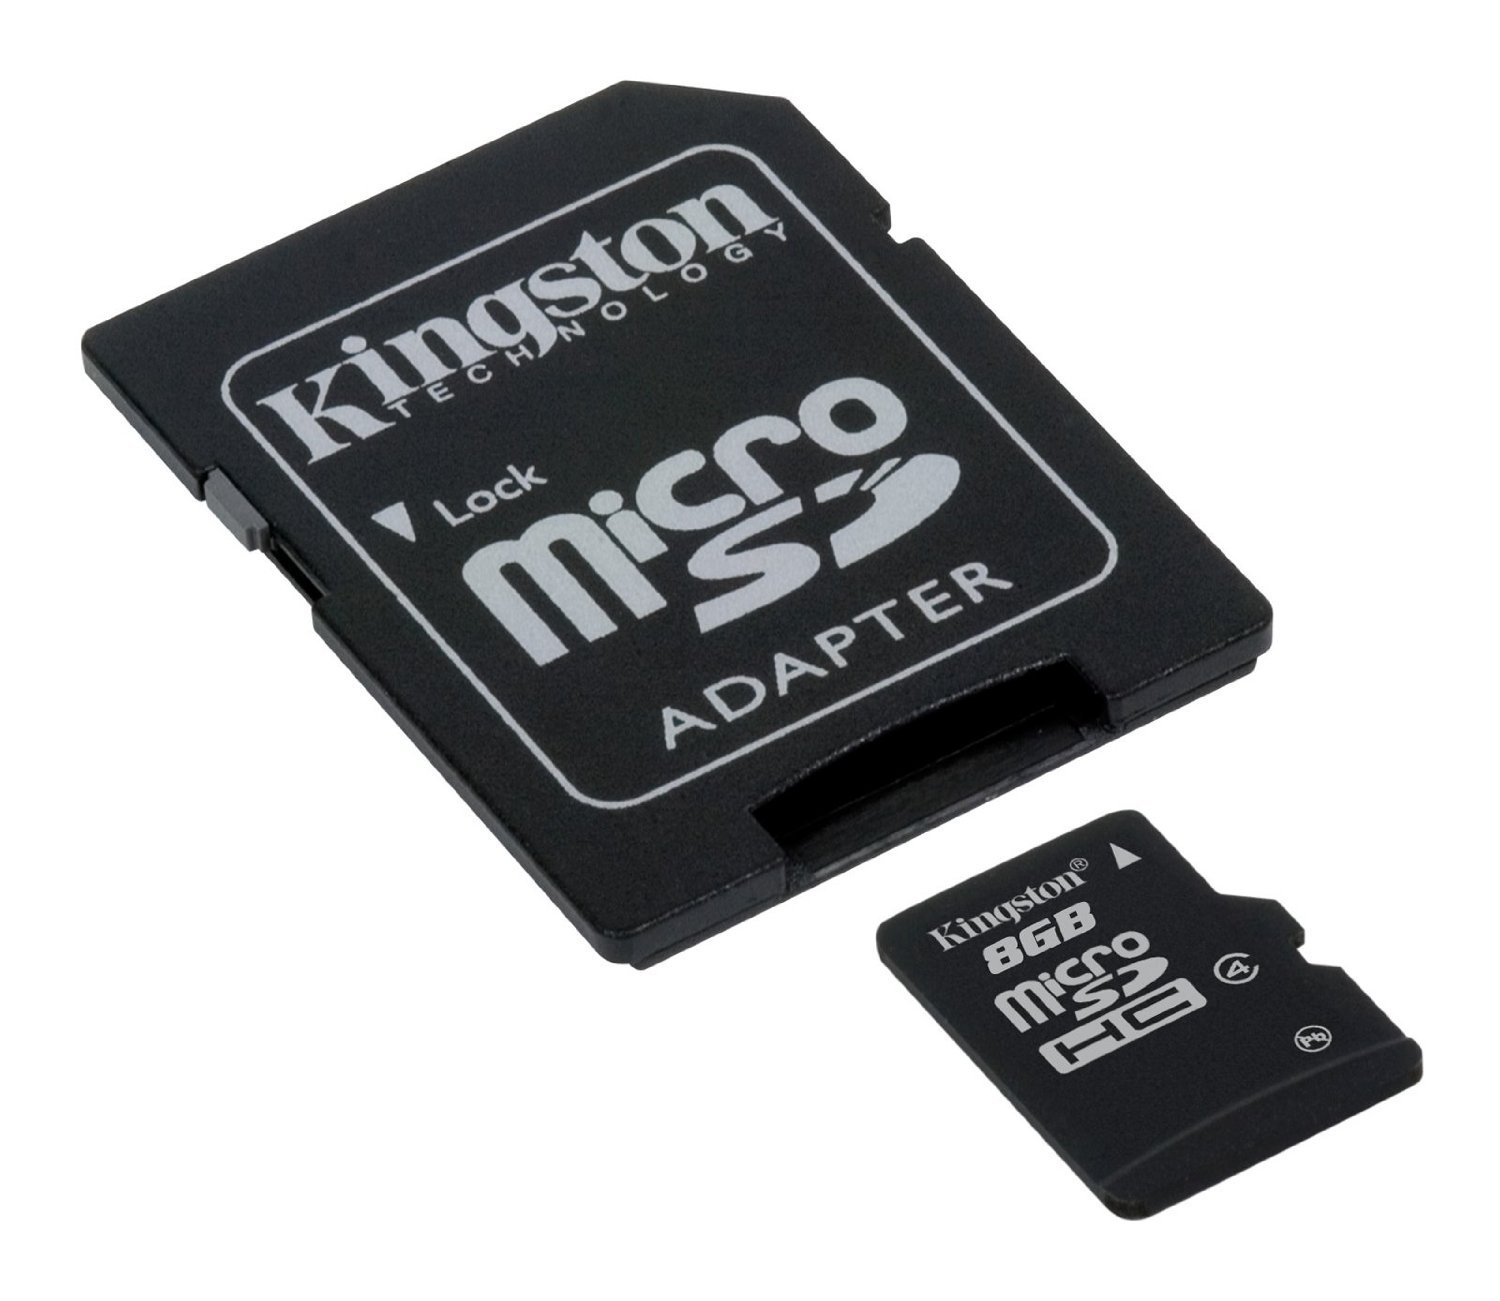 Professional Kingston MicroSDHC 4GB (4 Gigabyte) Card for LG enV 3 Phone Phone with custom formatting and Standard SD Adapter. (SDHC Class 4 Certified)